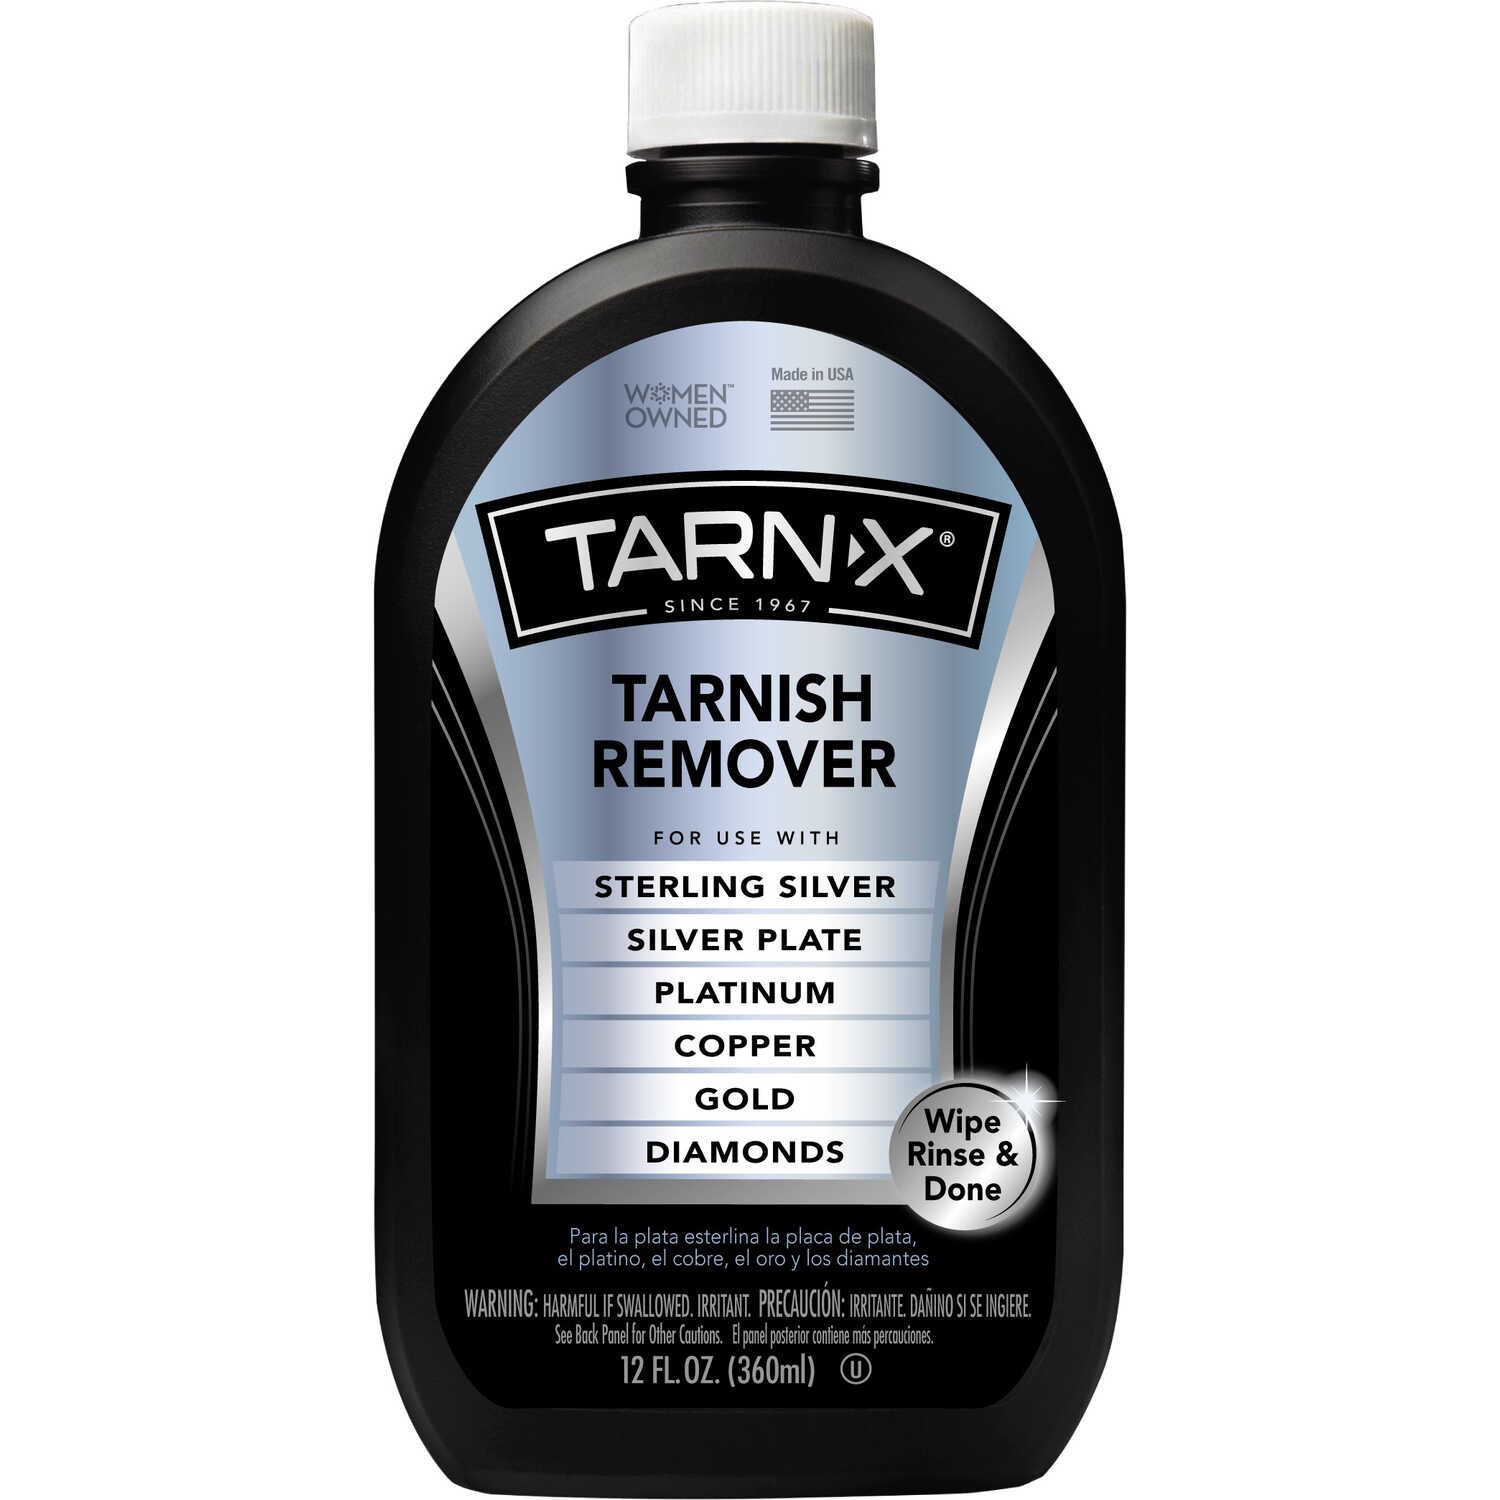 Tarn-X  No Scent Tarnish Remover  12 ounce  Liquid